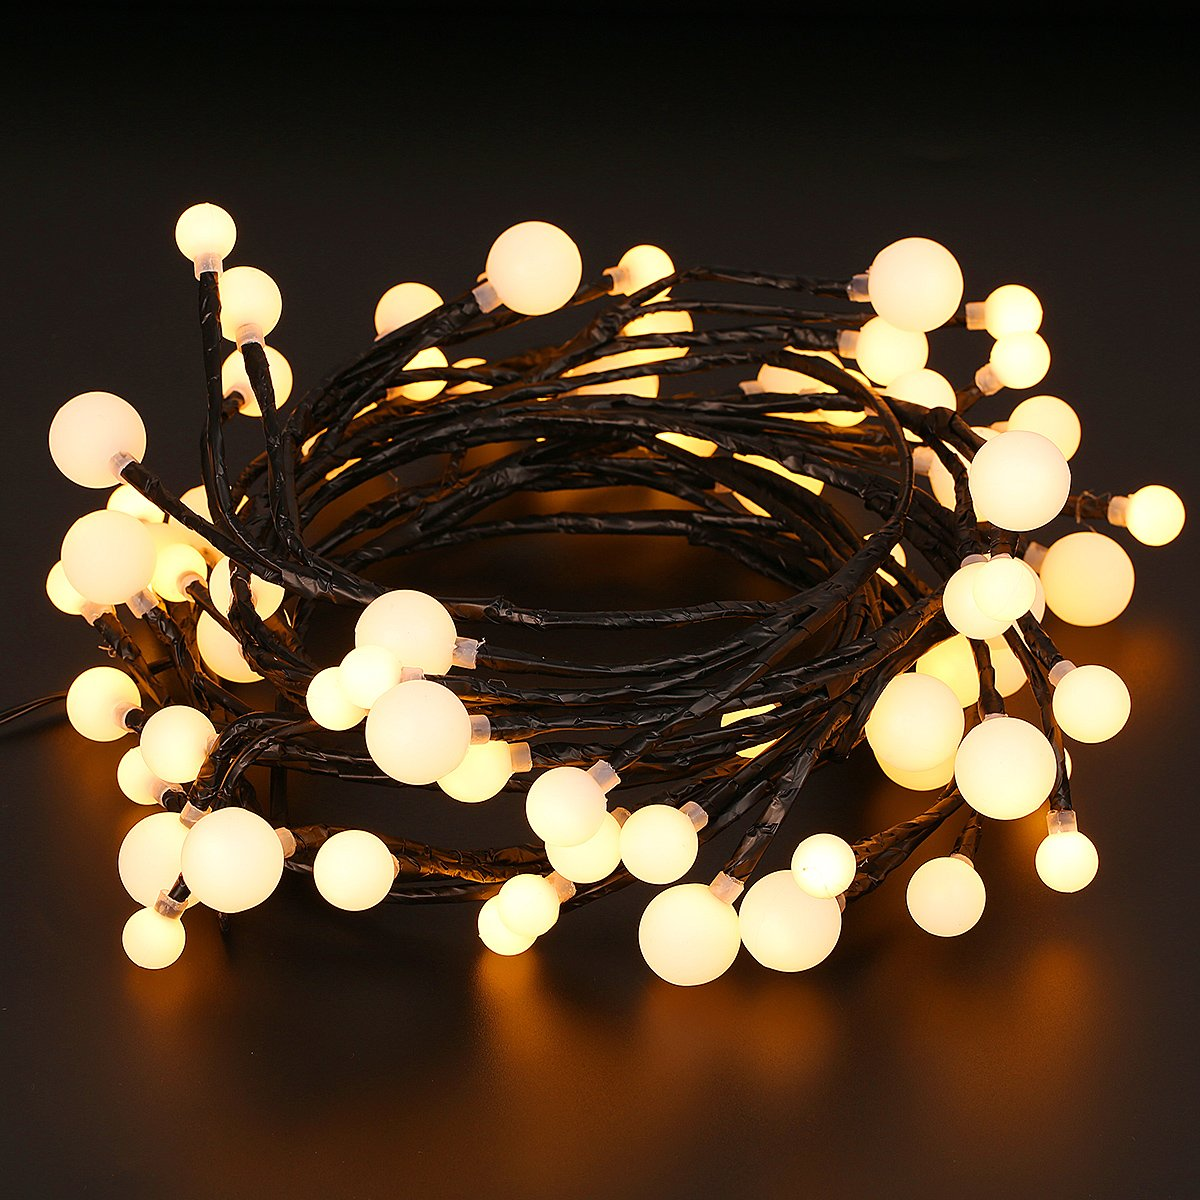 Starry String Lights with 72 Micro LEDs on 8.2feet, Indoor&Outdoor Fairy Decor Globe String Lights for DIY,Wedding,Party Christmas Table Decorations by Ebeet